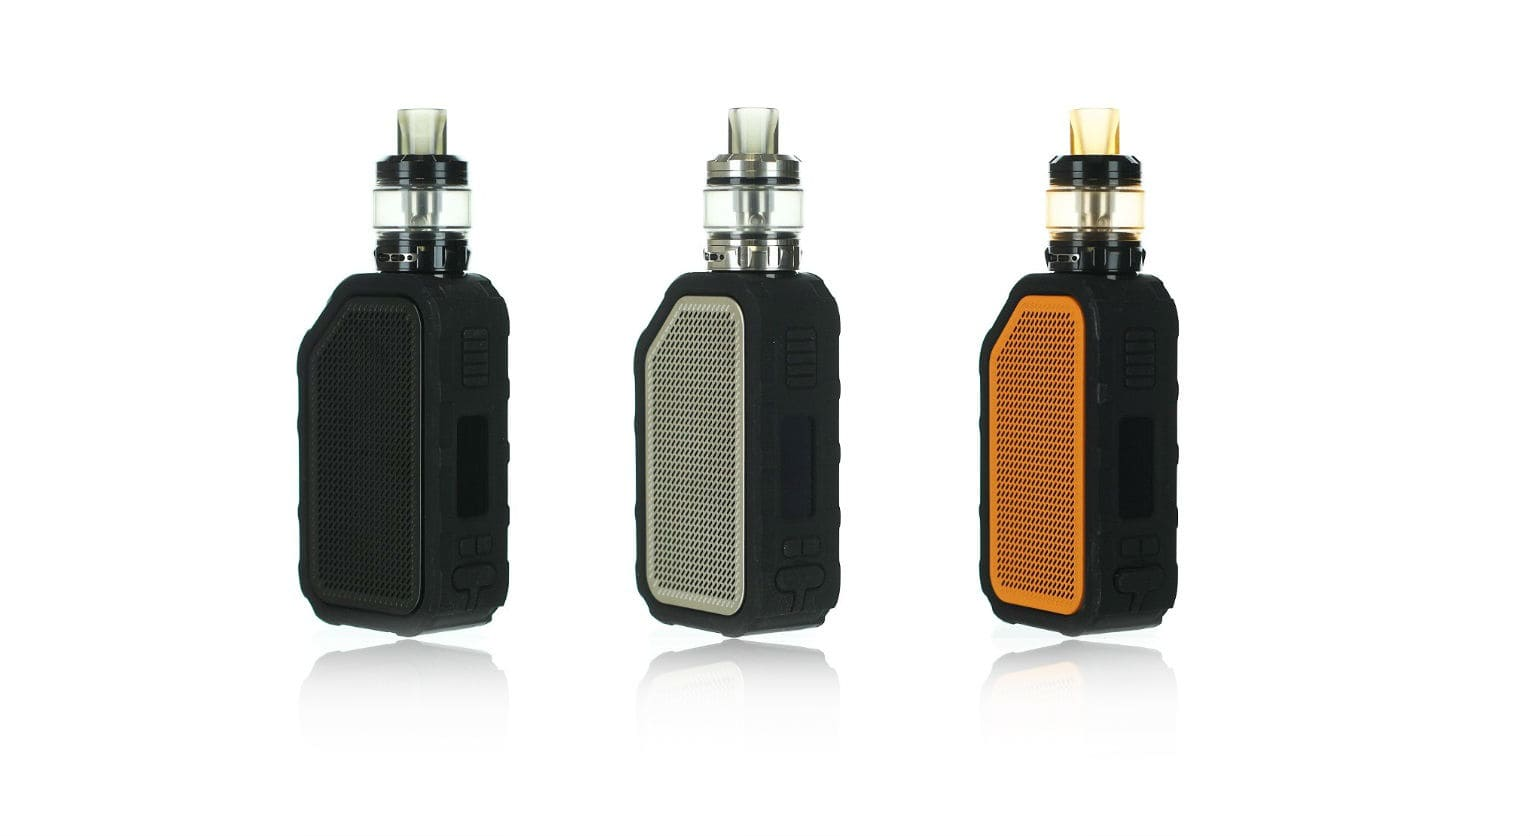 Wismec Active 80W Kit colors image